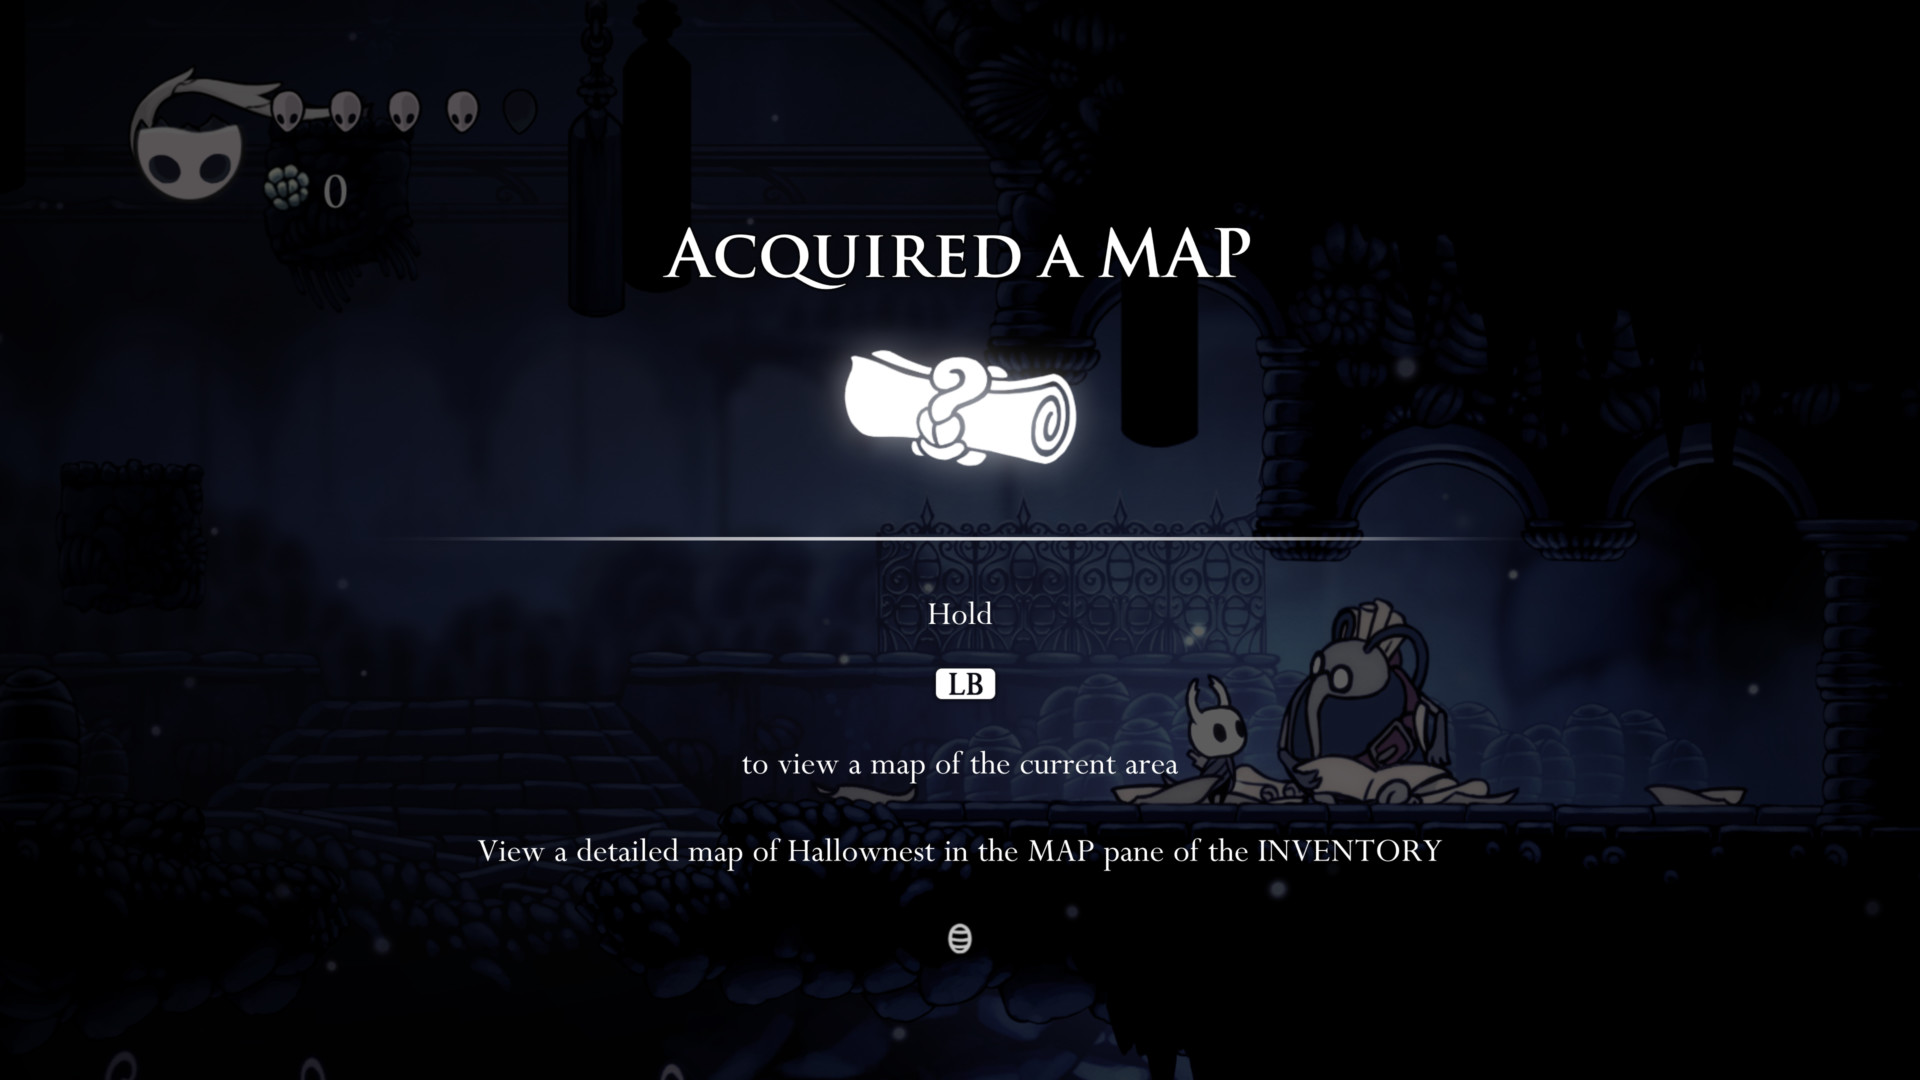 Acquired a map screenshot of Hollow Knight video game interface.